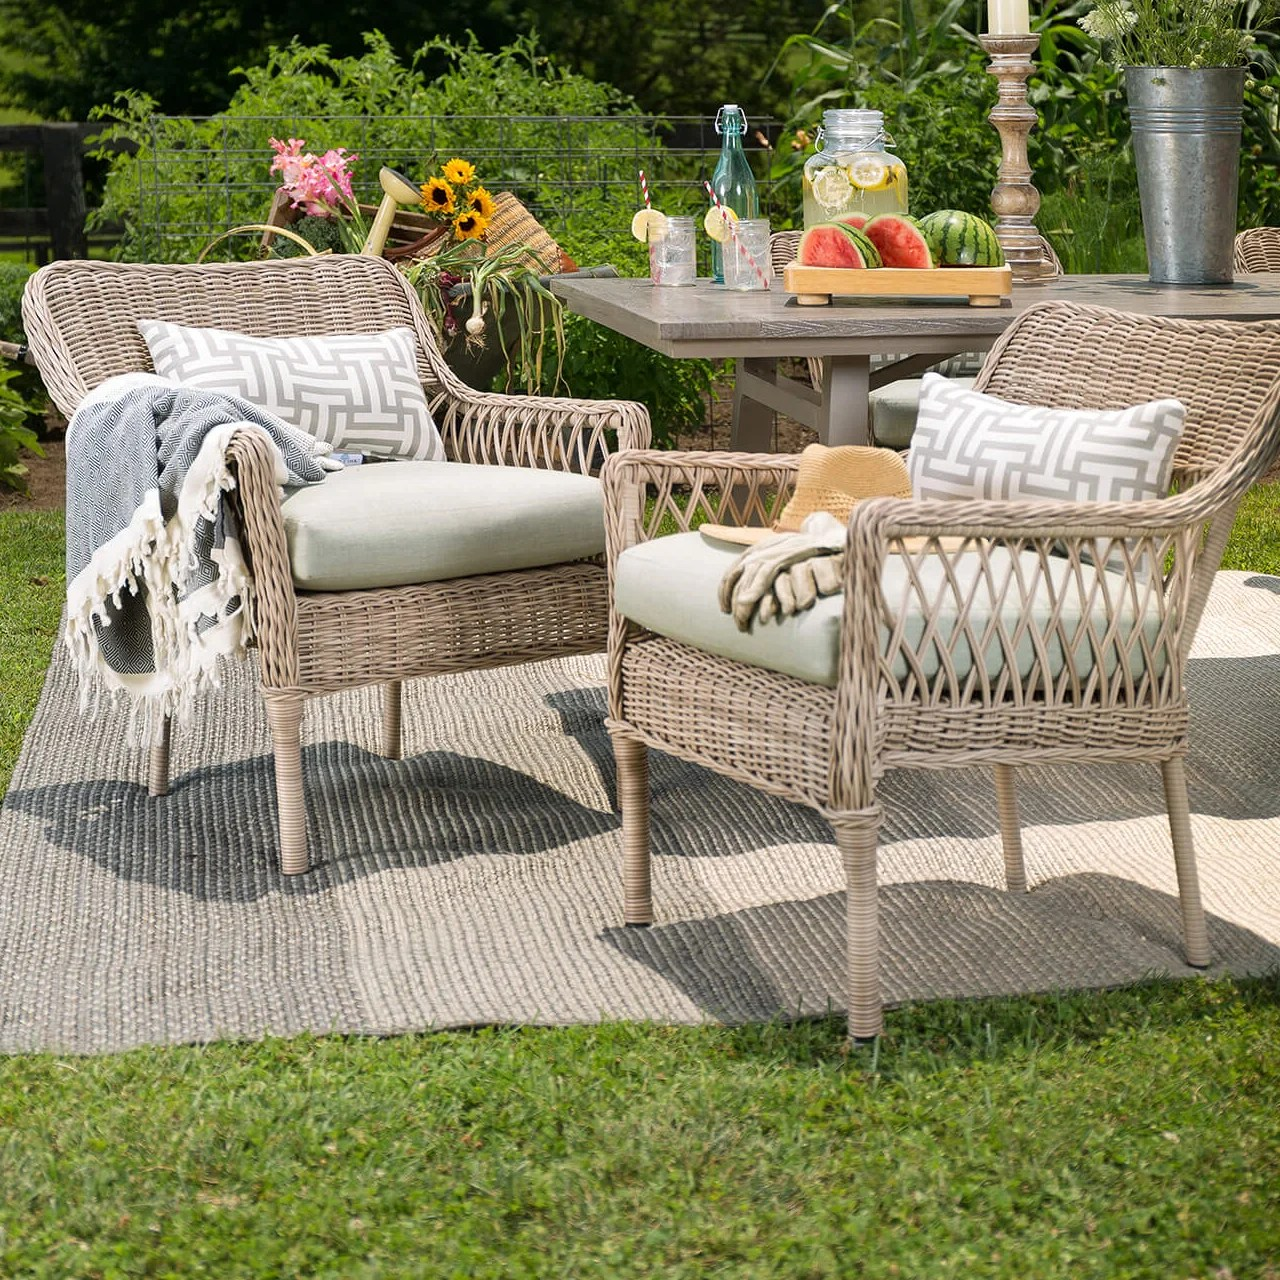 Wicker Outdoor Dining Chairs Paul Stacking Wicker Patio Dining Chair With Cushion